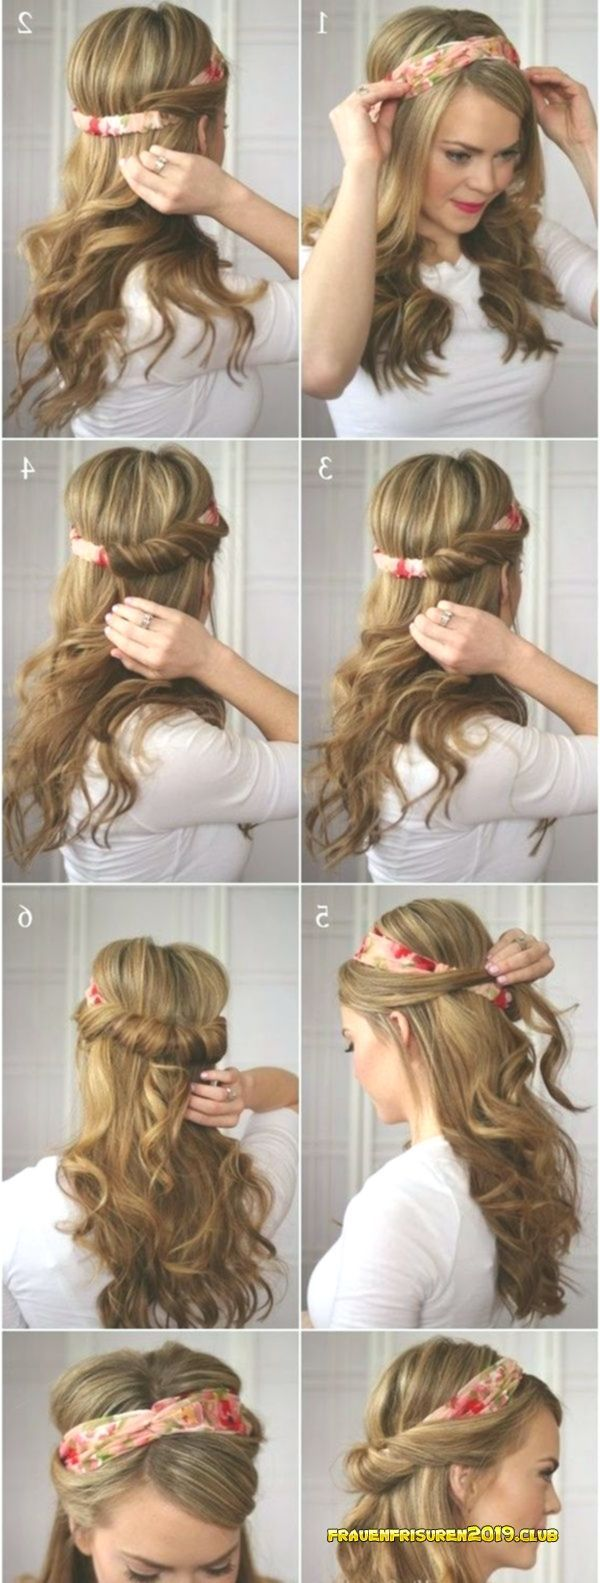 Easy Quick Hairstyles 2019 - 40 Fast and Easy Back to ...